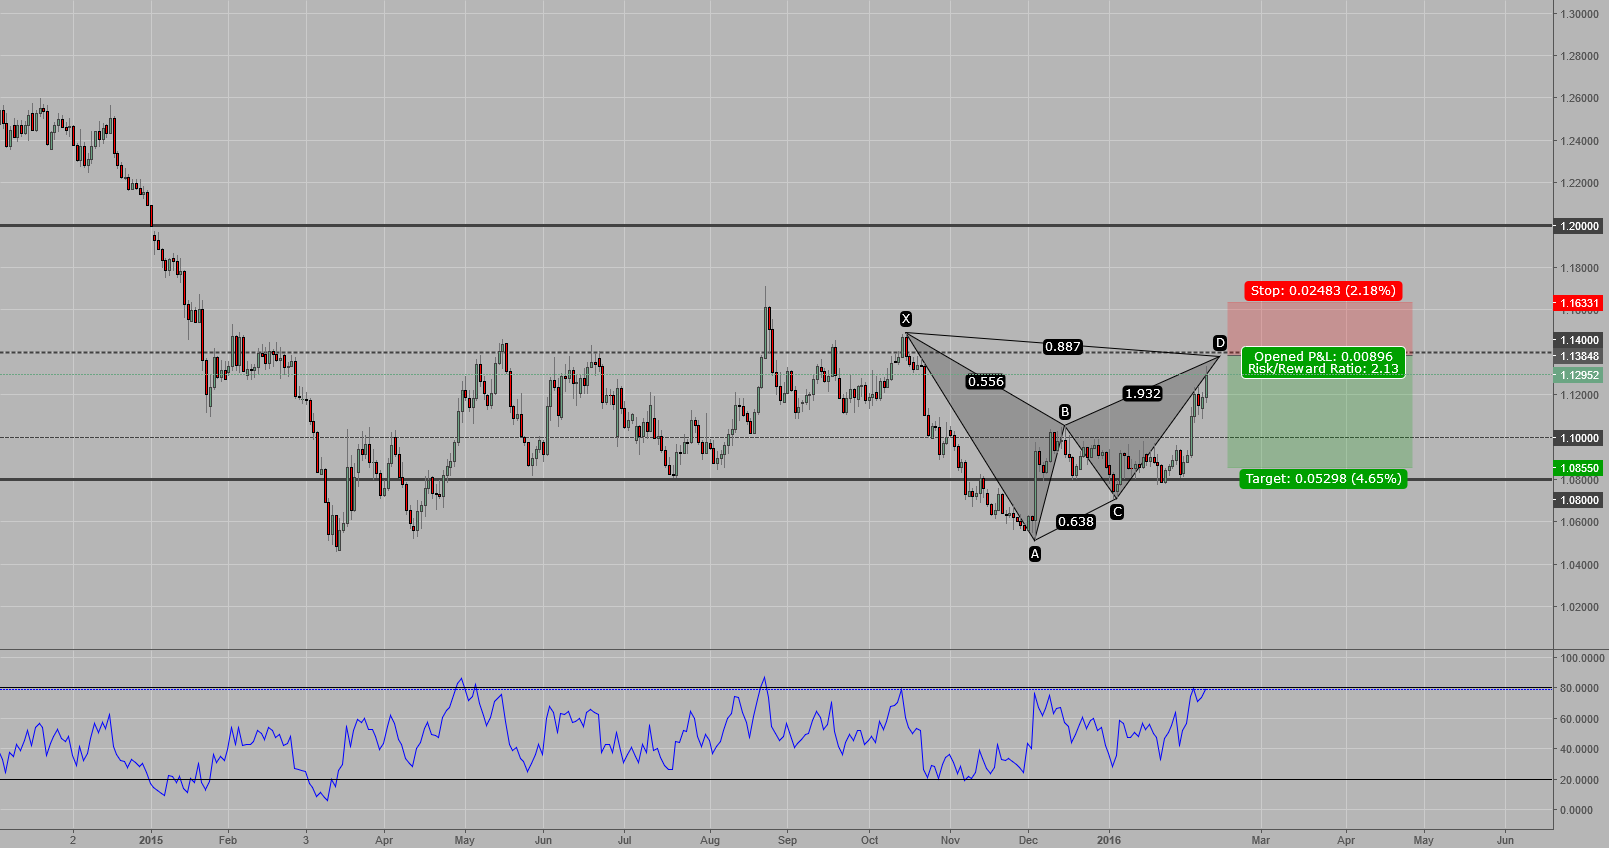 EURUSD - Bearish Bat at 1.4000